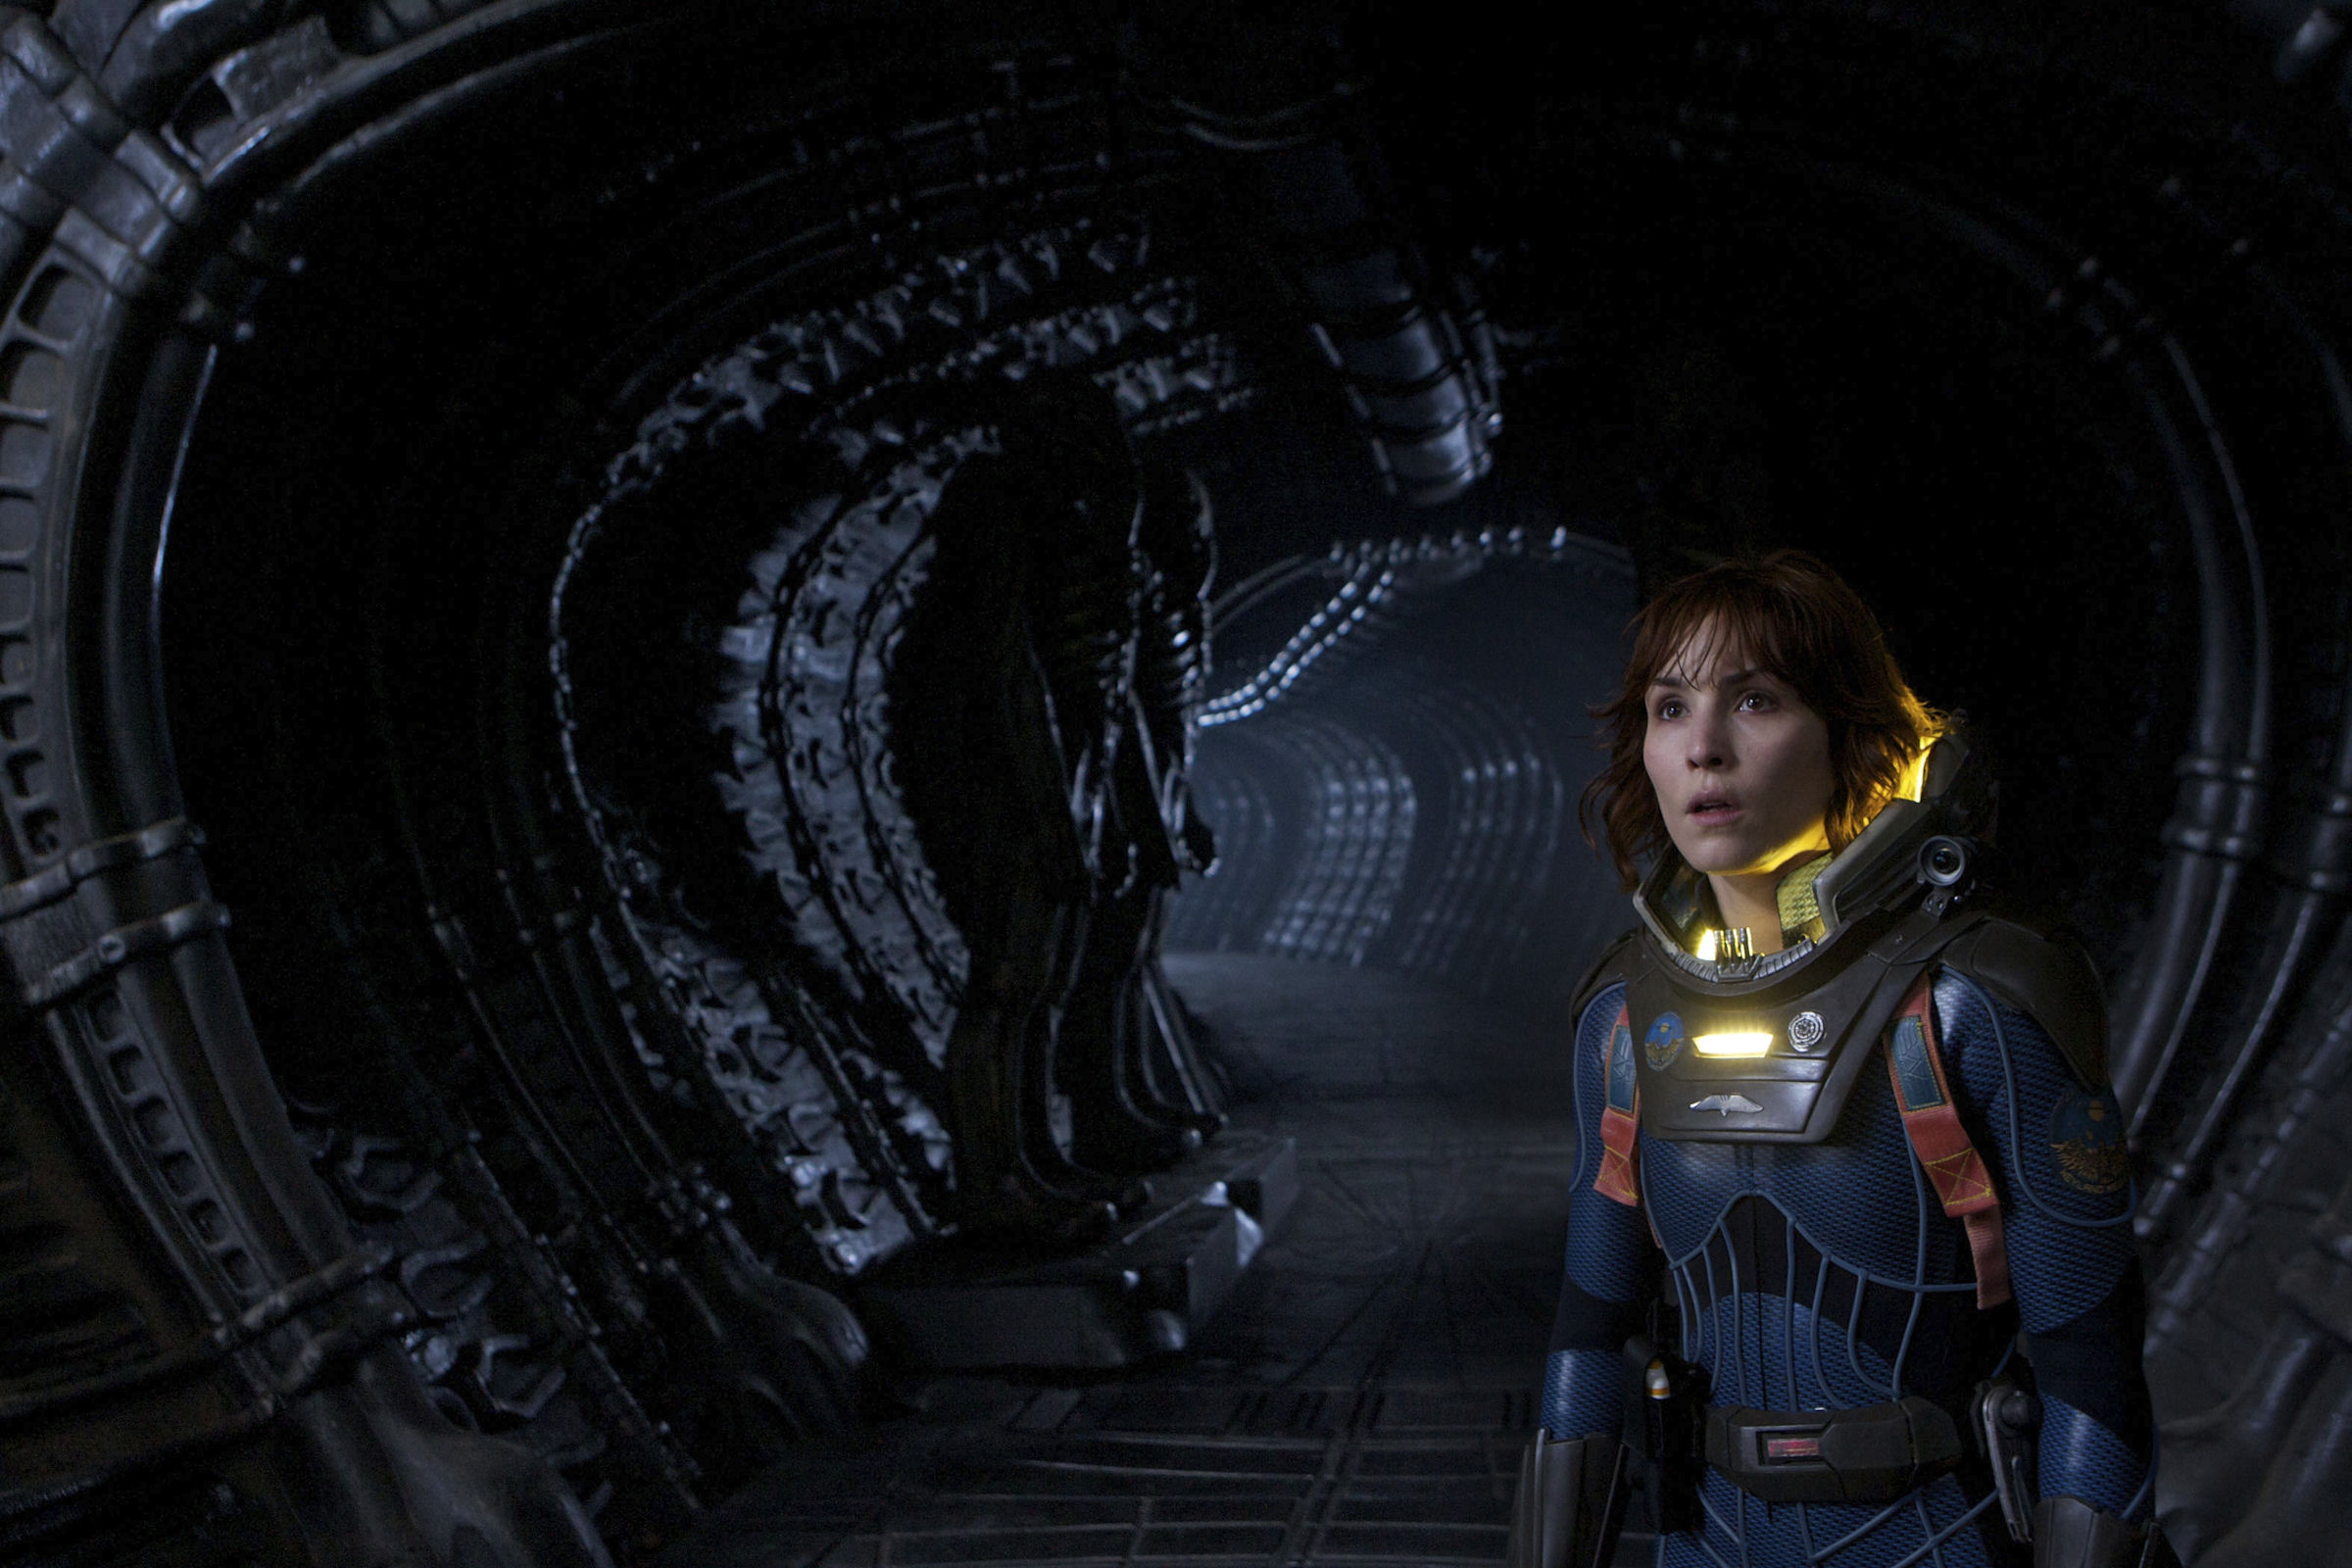 Noomi Rapace explores the alien ship in Prometheus (2012)